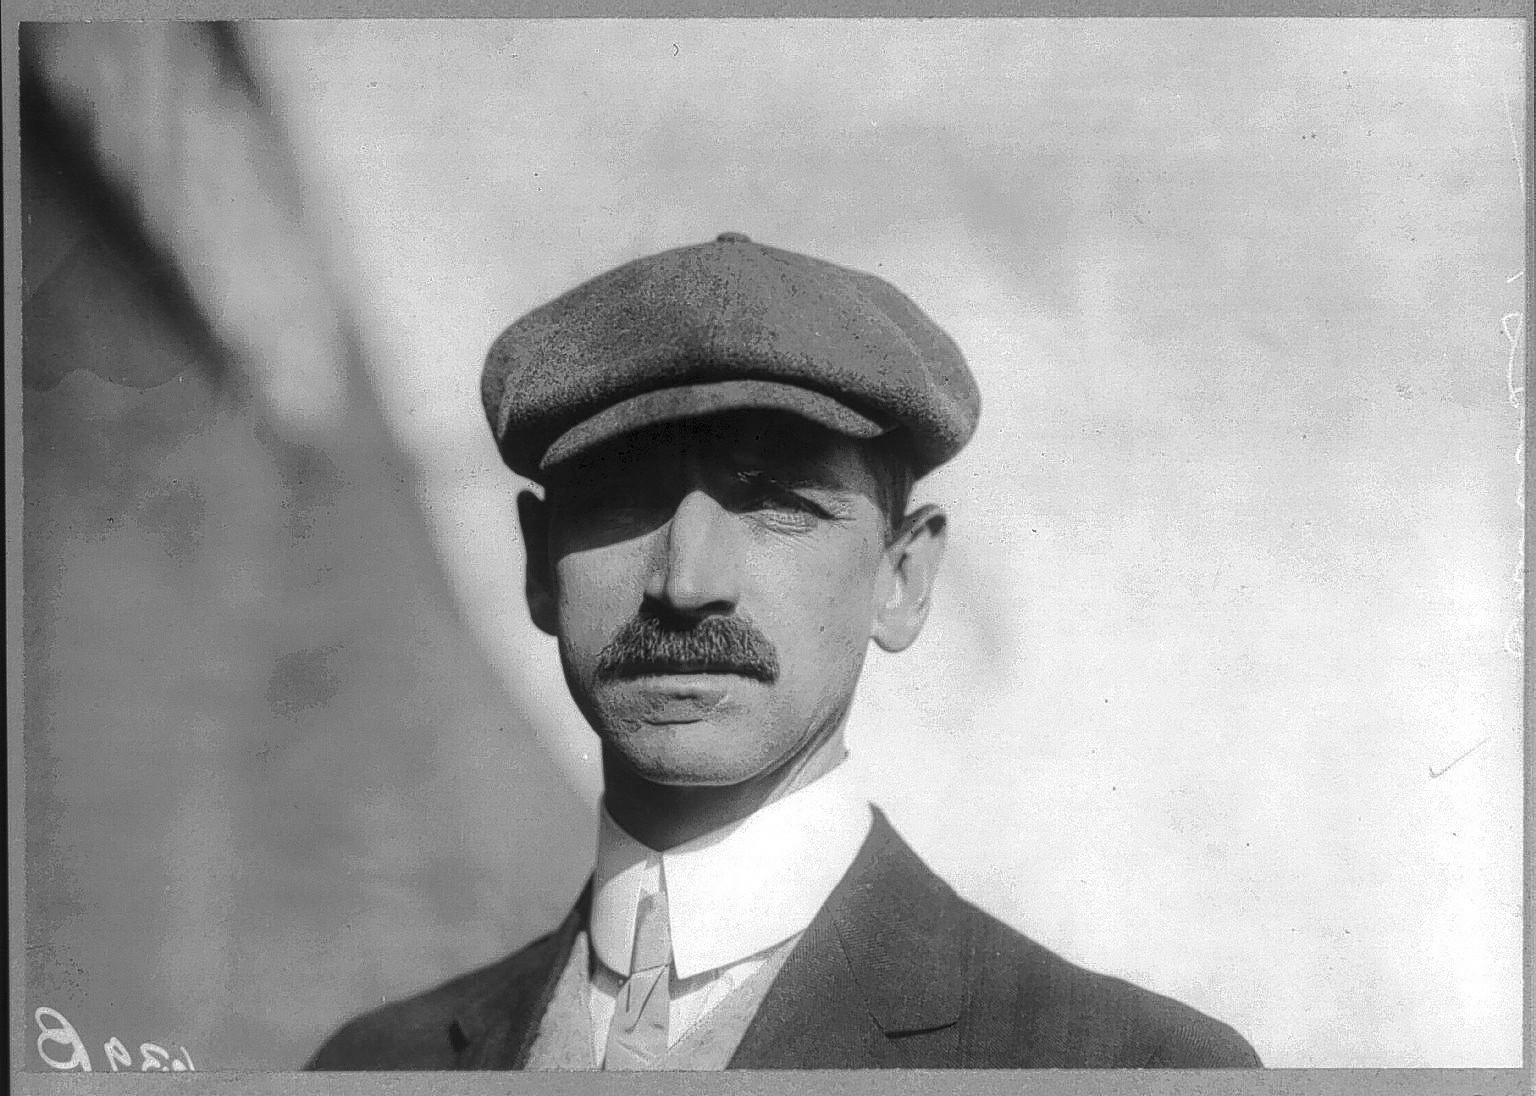 Glenn Curtiss was a champion cyclist and motorcyclist known for his innovative motors before he joined telephone inventor Alexander Graham Bell in 1907 to develop a series of ground-breaking airplanes.